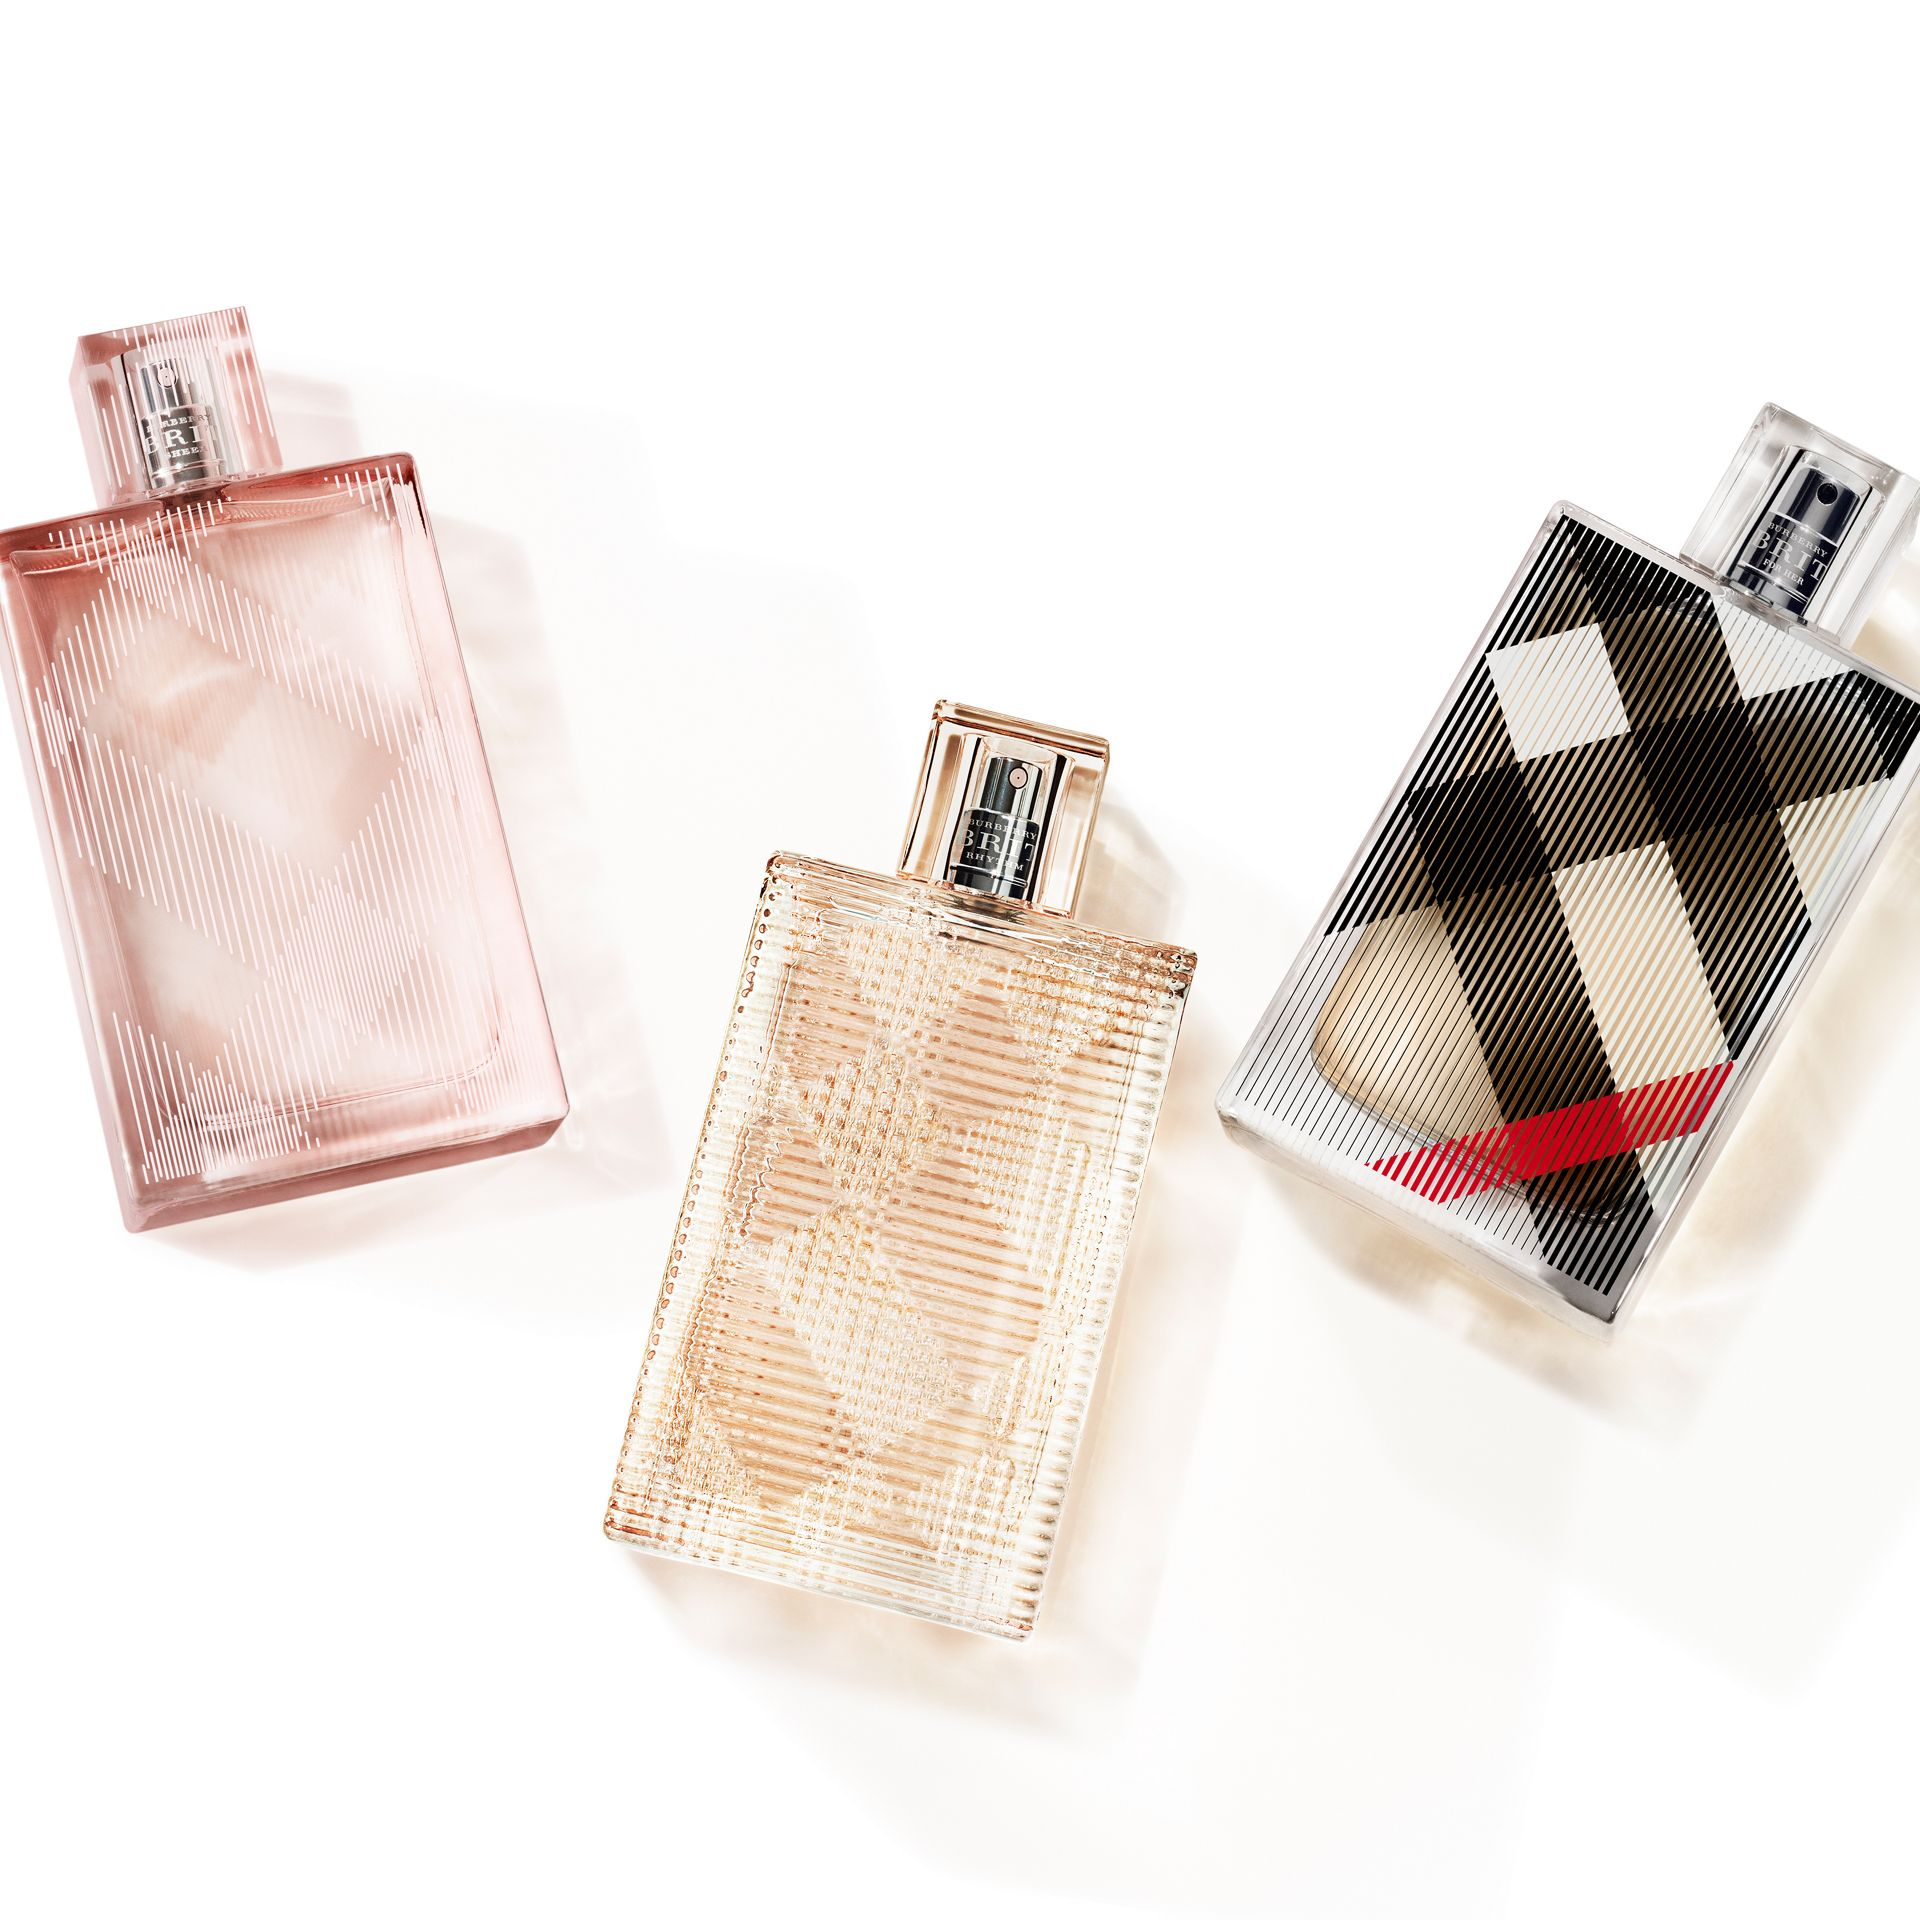 Burberry Brit For Her Eau de Parfum 50ml - Women | Burberry - gallery image 3